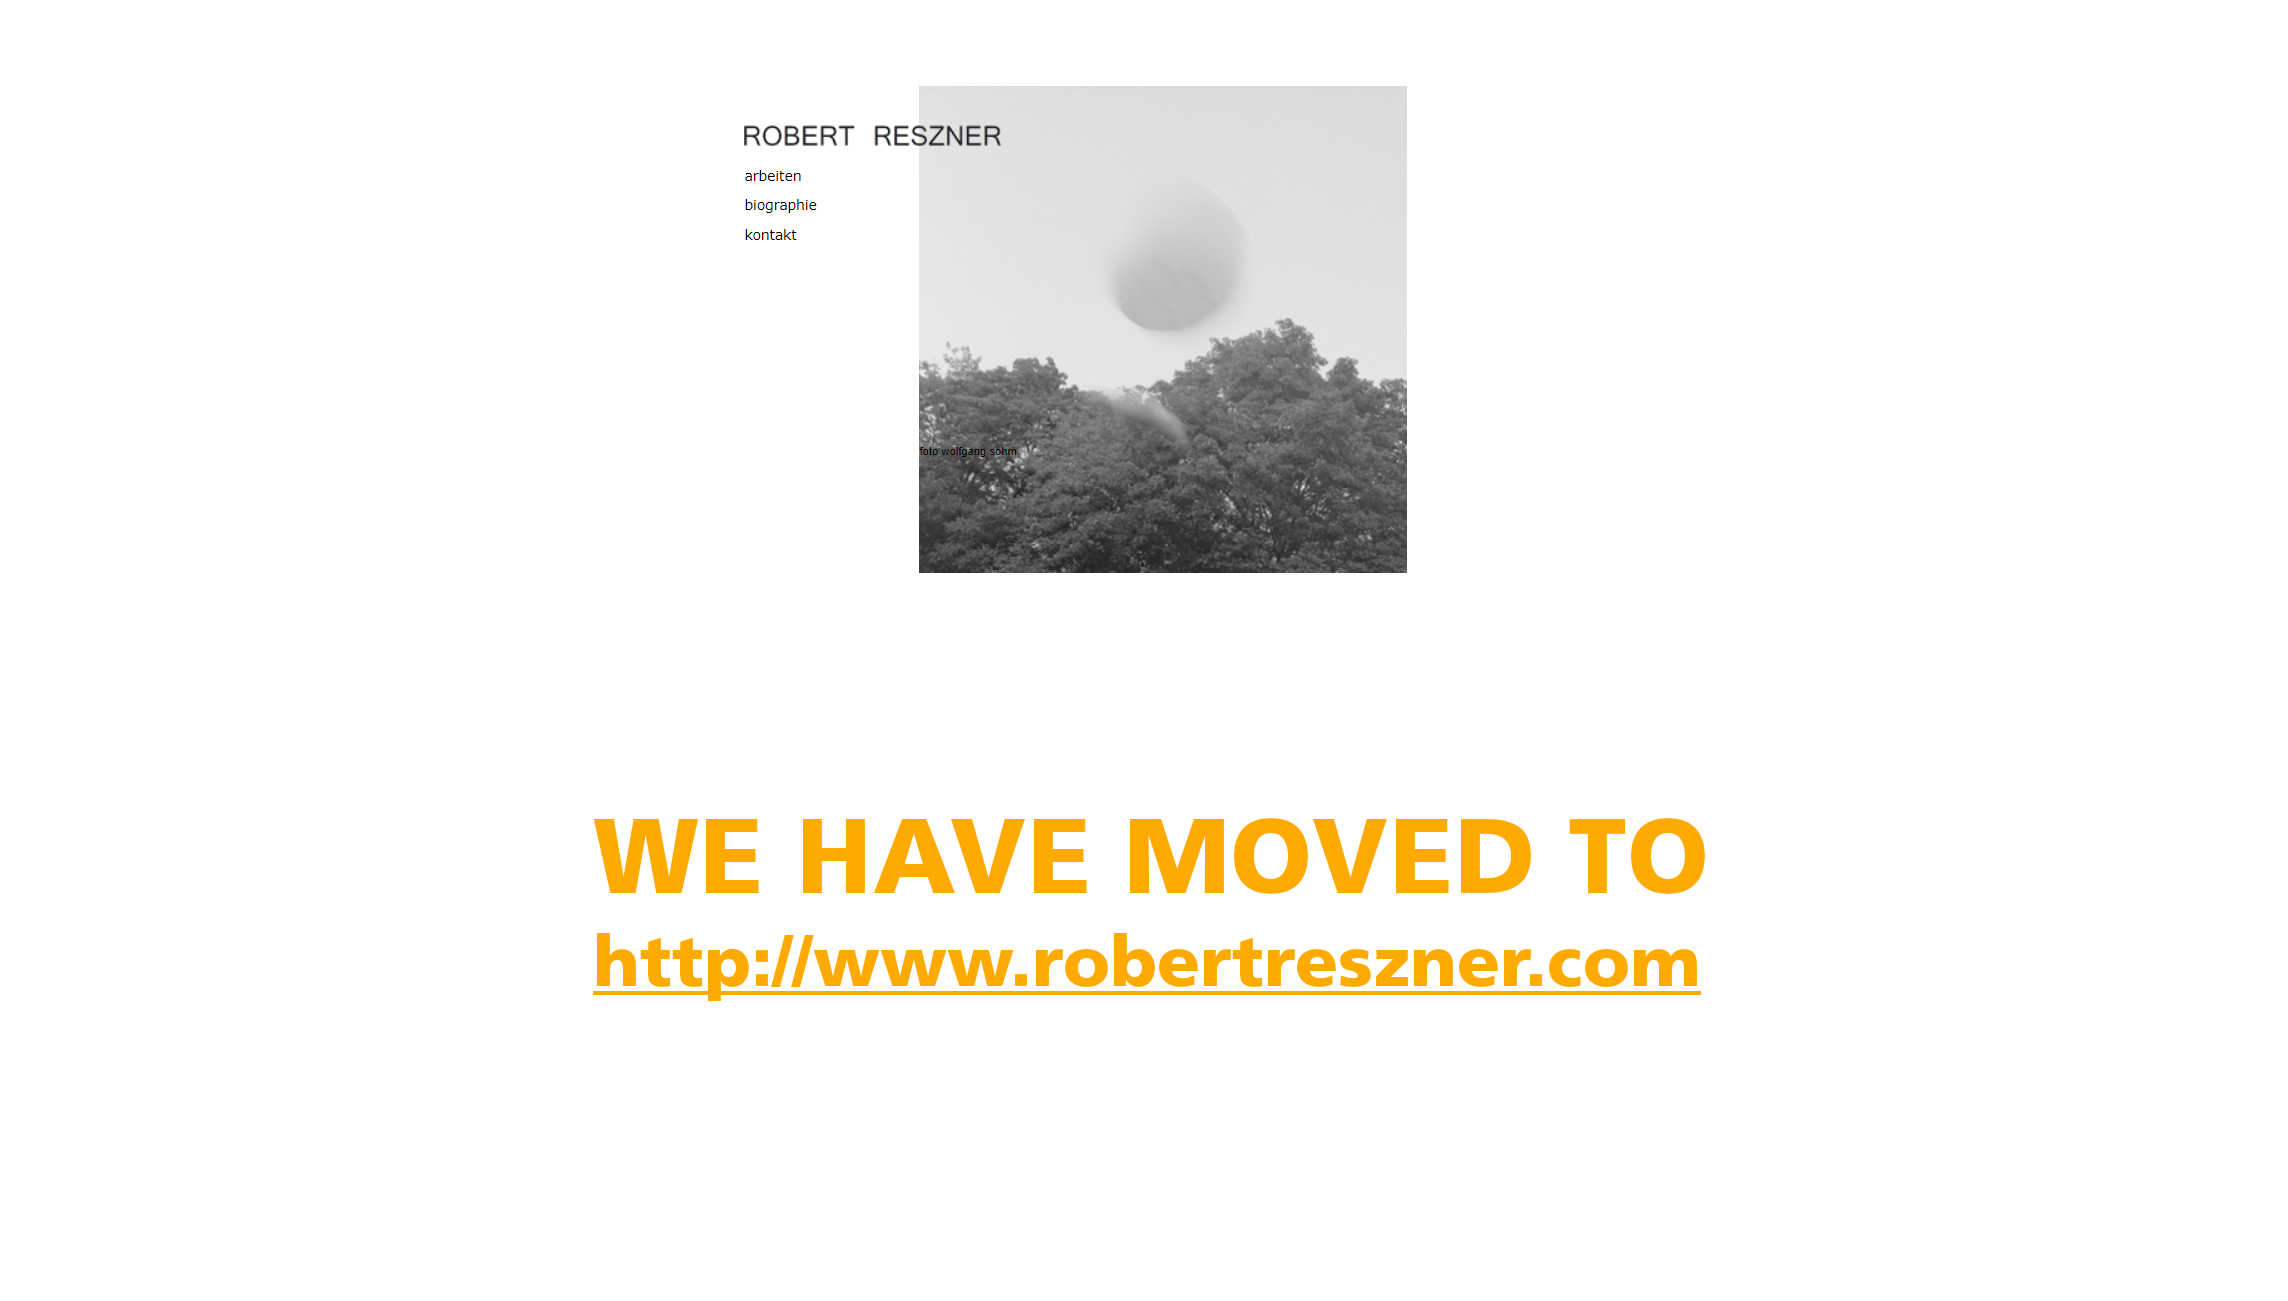 We have moved to http://www.robertreszner.com